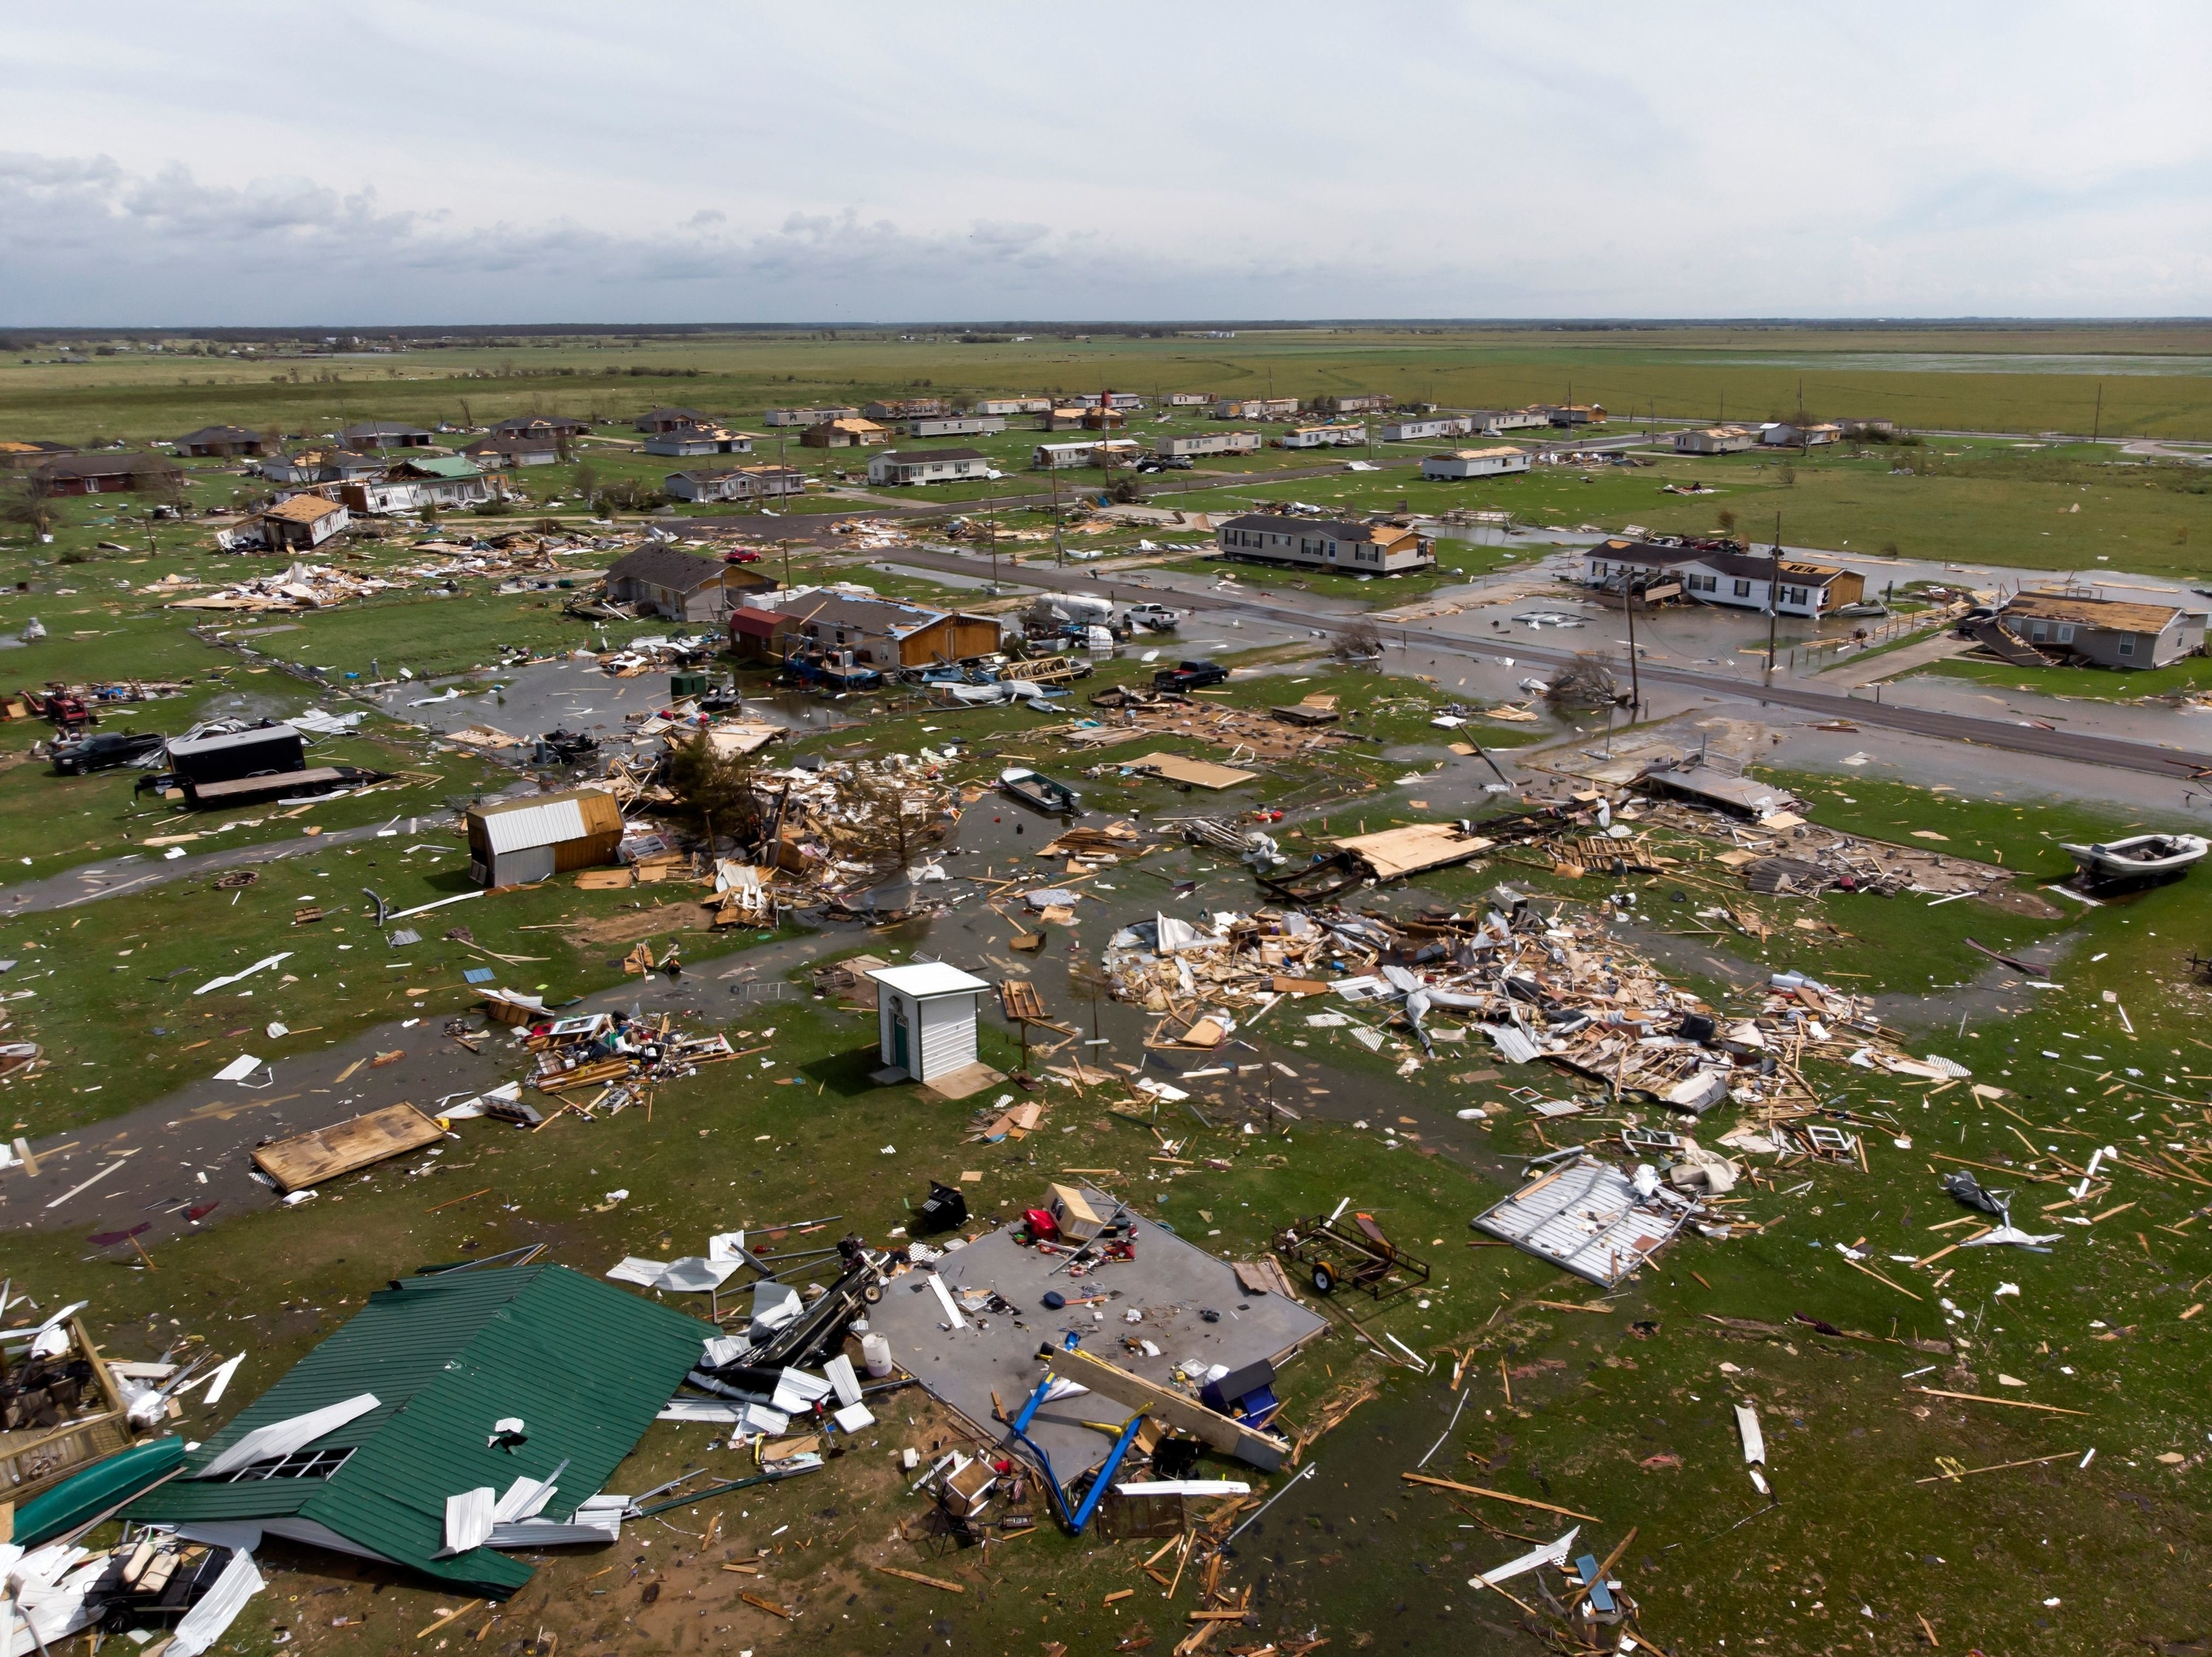 A vast panorama showing many completely destroyed homes